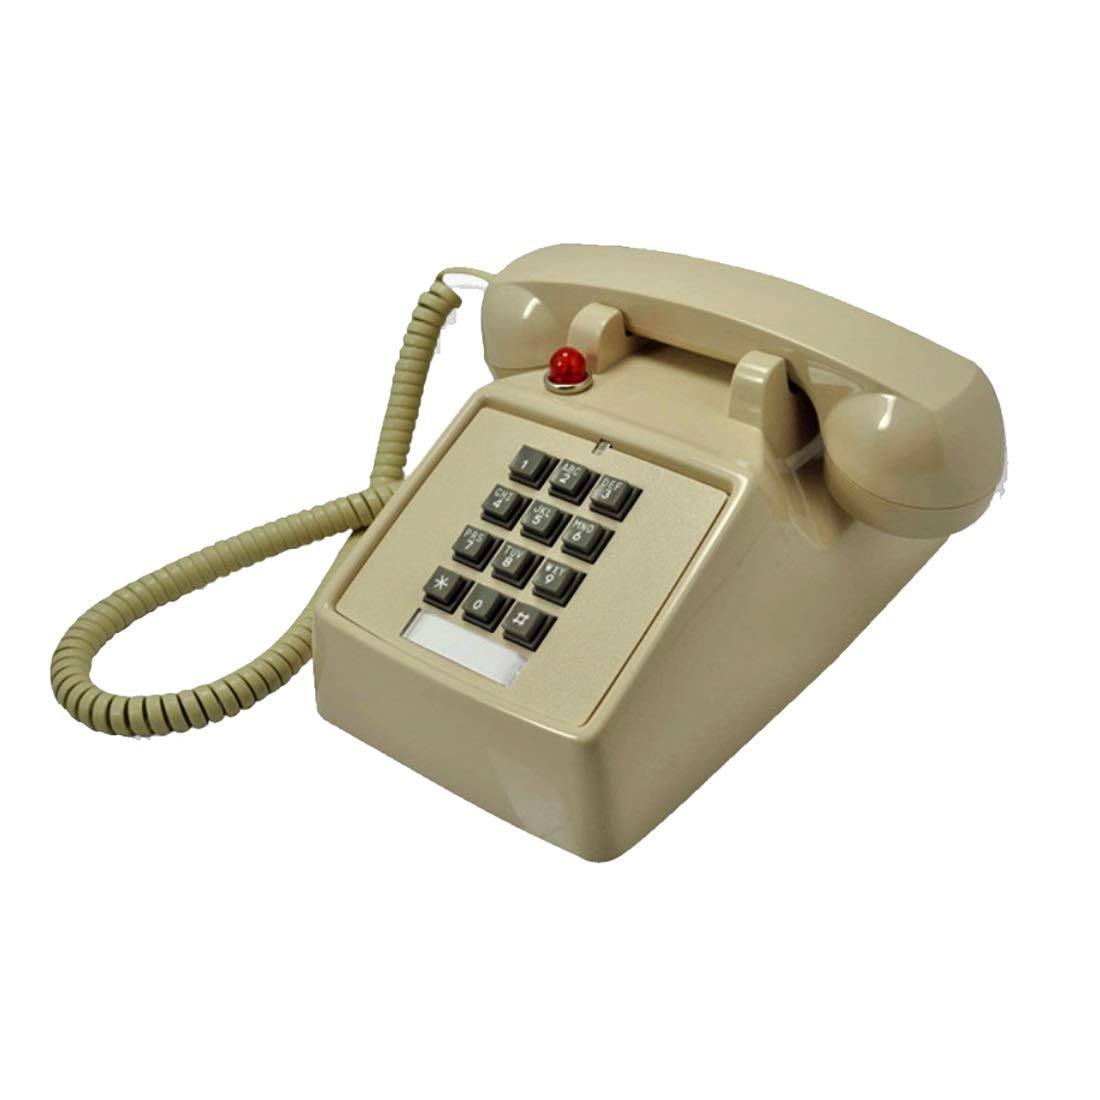 ZHILIAN White Black Red Classic European Family Landline Fixed Telephone Simple Decorative Phone with Indicator Light (Color : White)